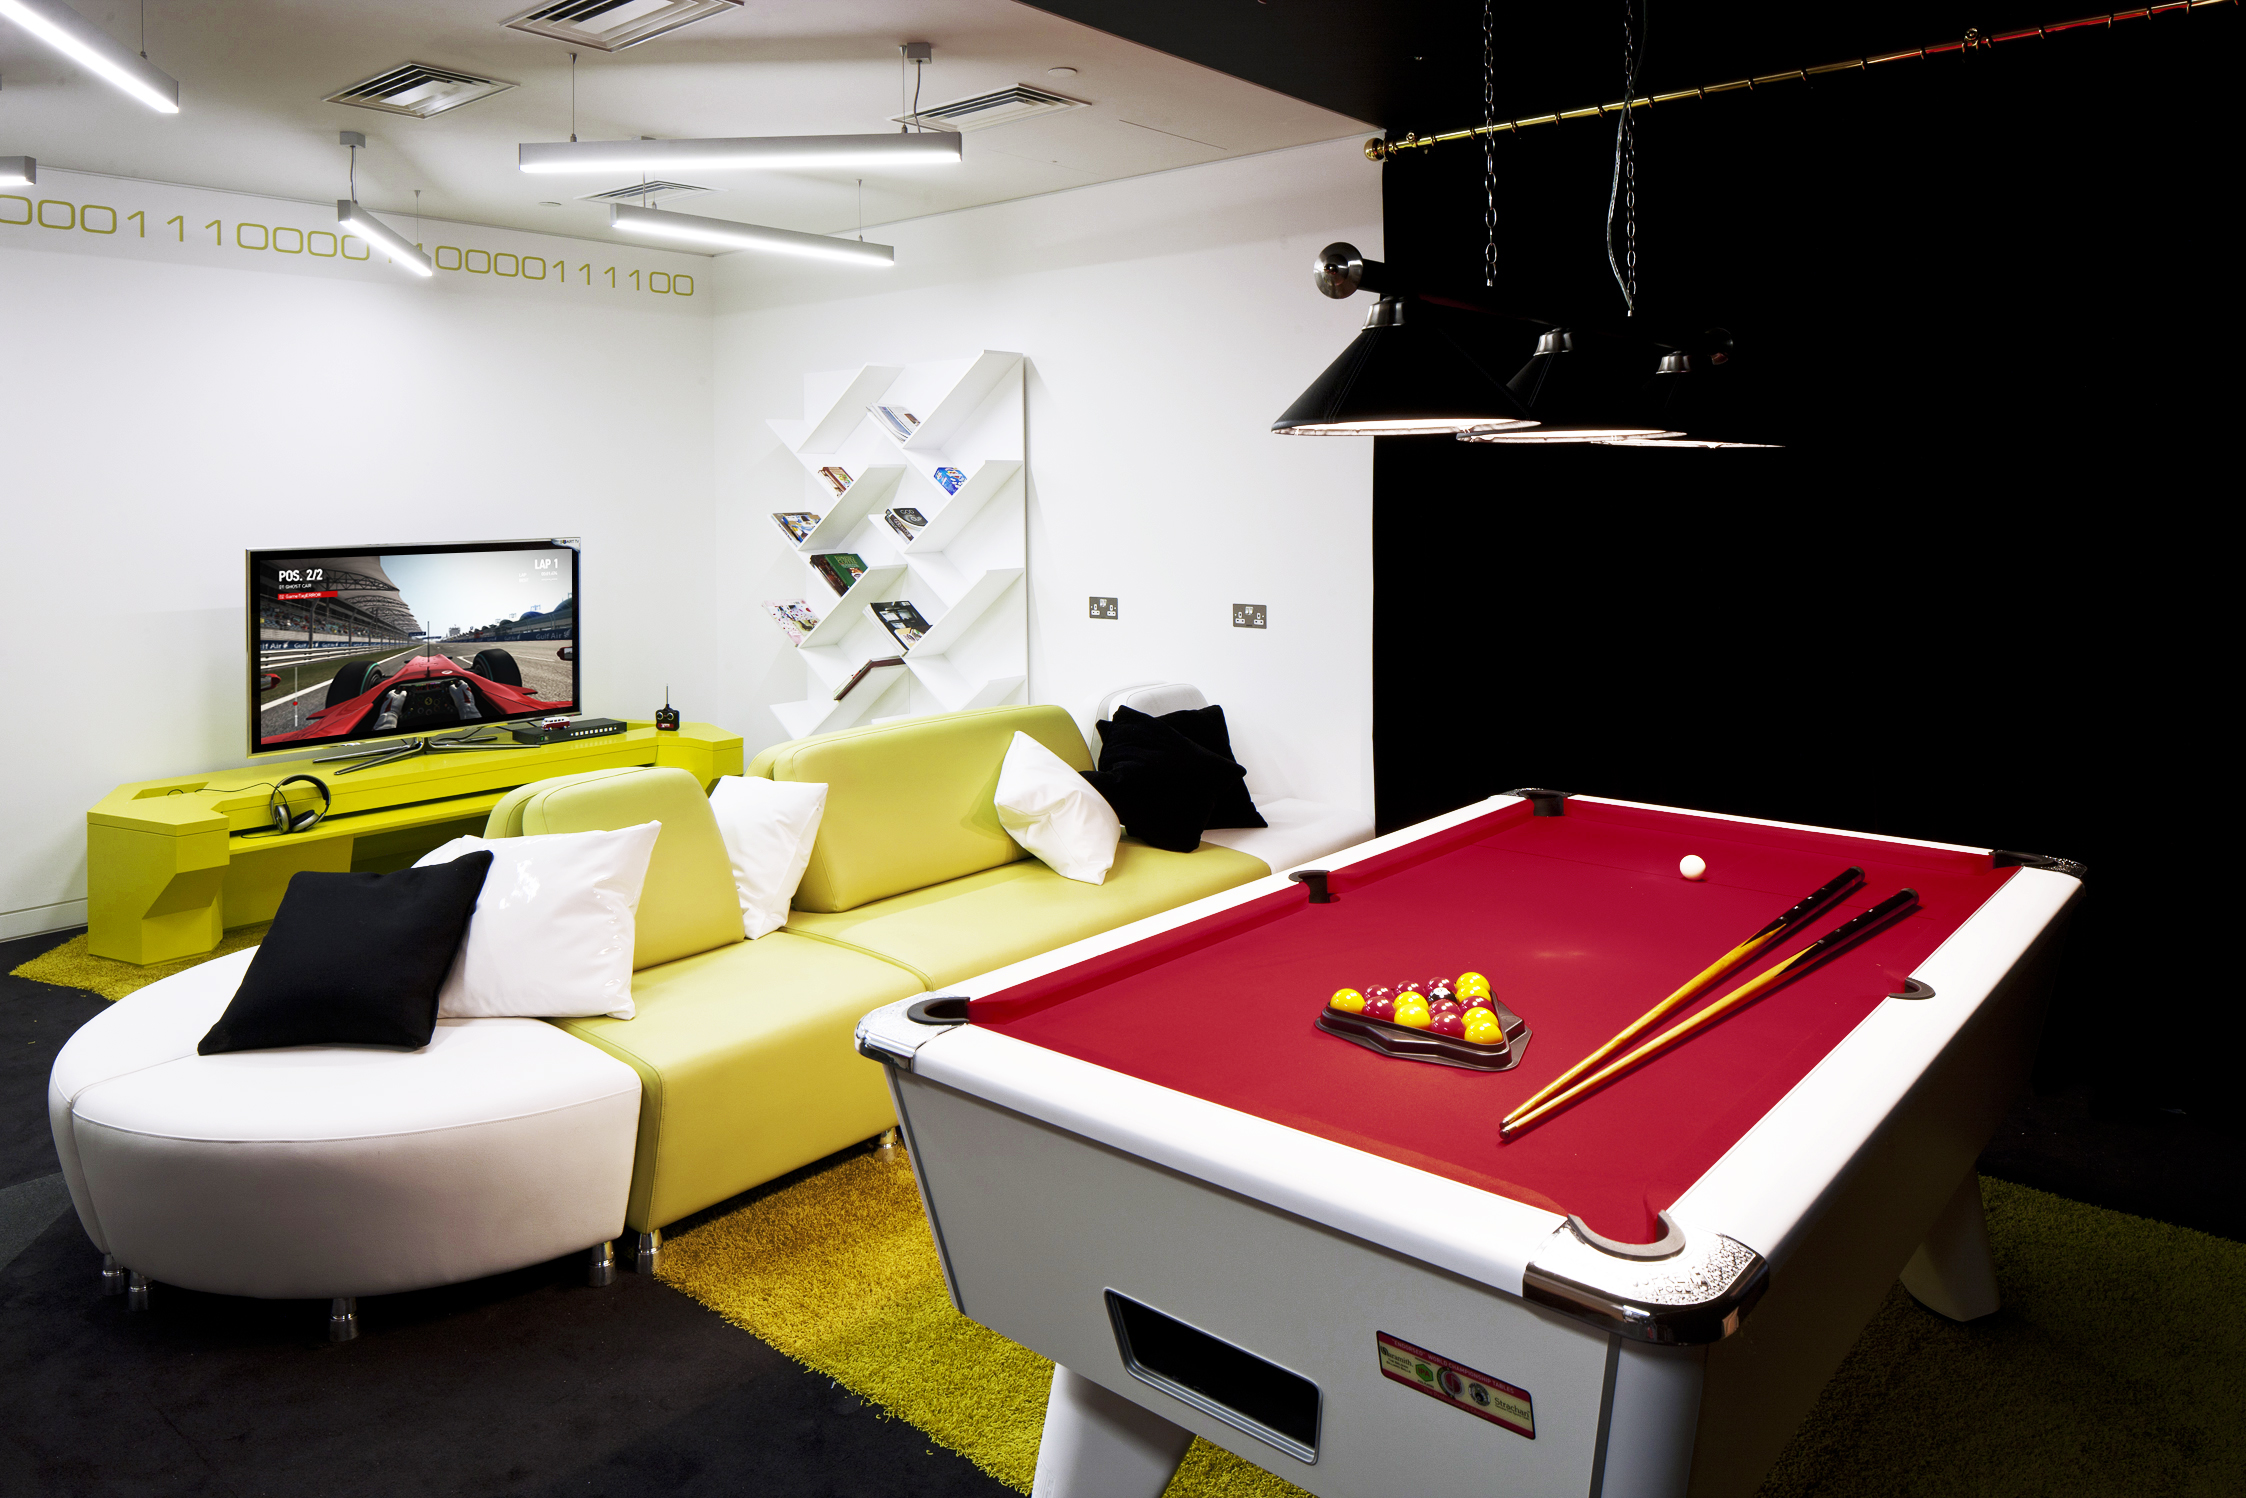 The pool table at Google's London Victoria HQ